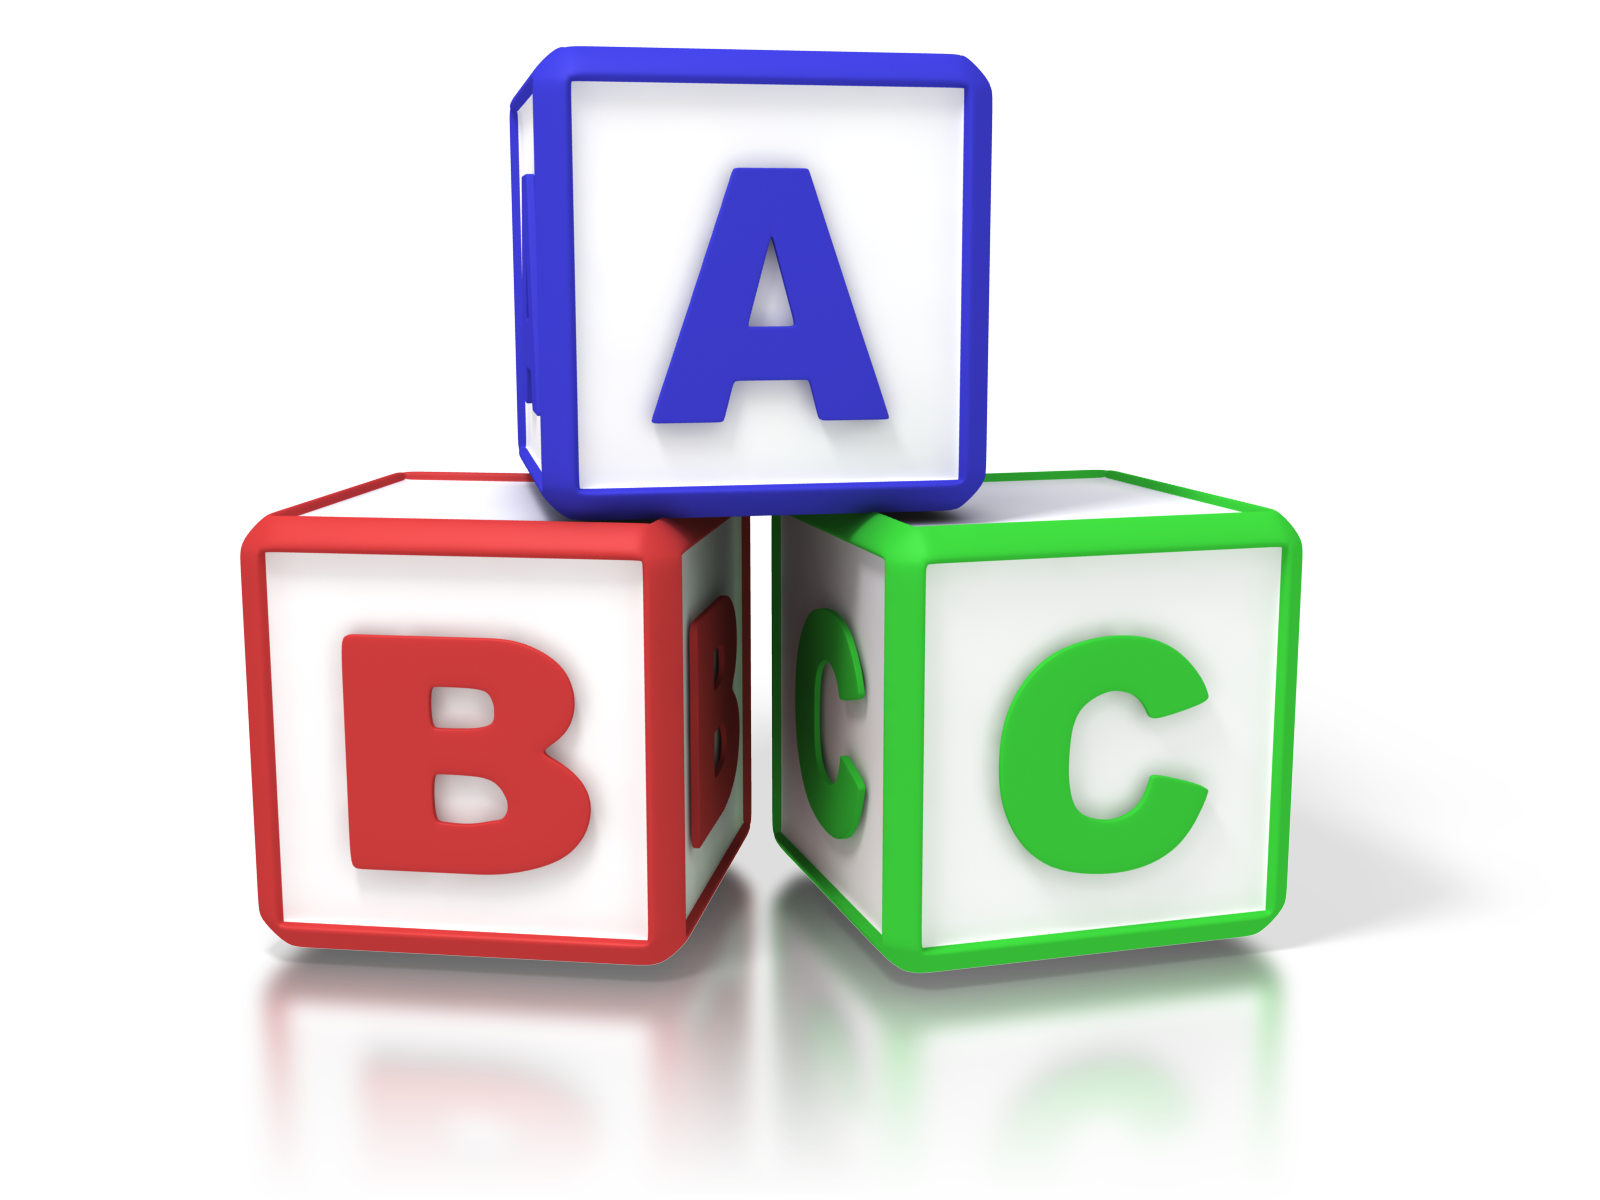 Clipart block letters. To get real change